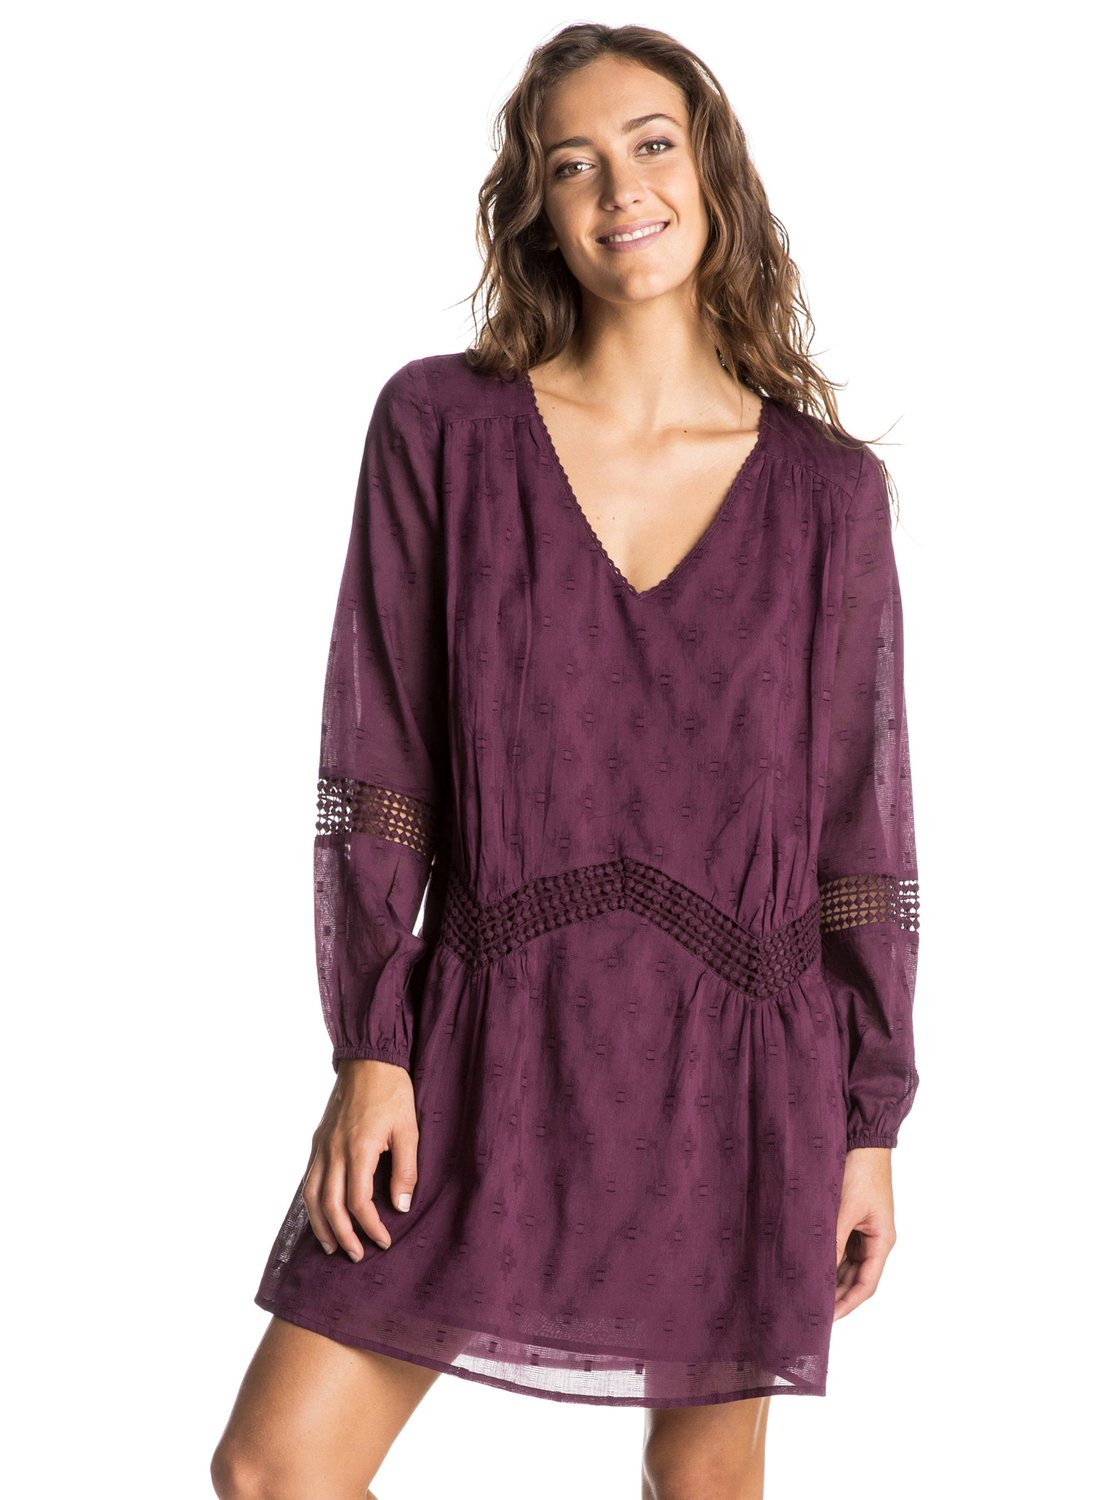 Roxy-Cali-Stars-Long-Sleeve-Dress-Robe-a-manches-longues-Femme